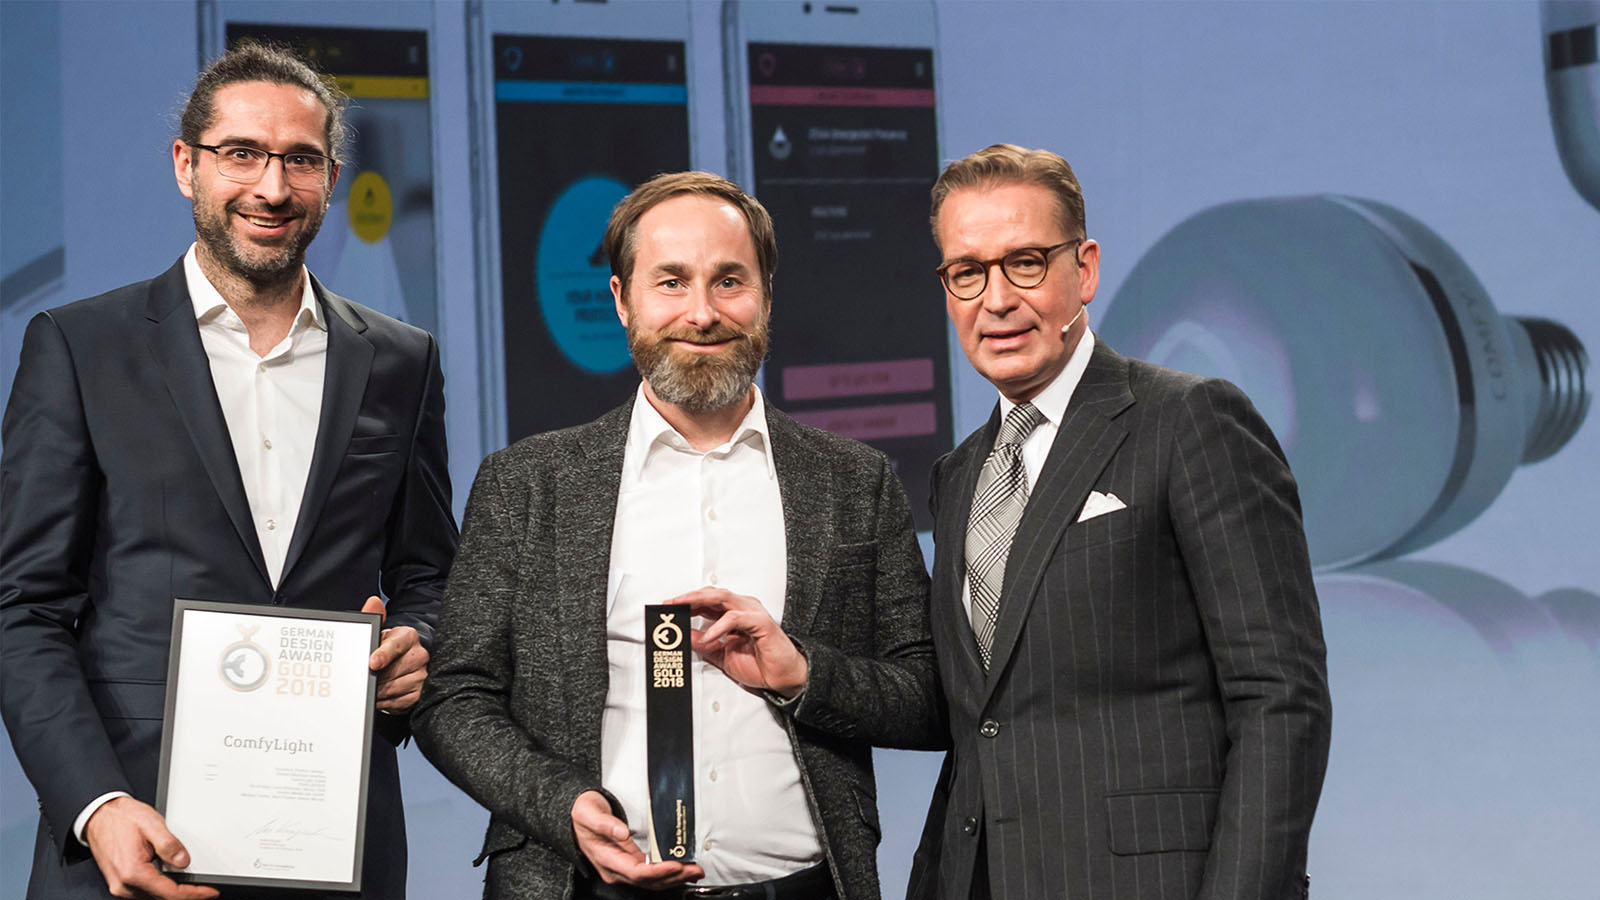 ComfyLight wins Gold at the coveted German Design Award 2018!